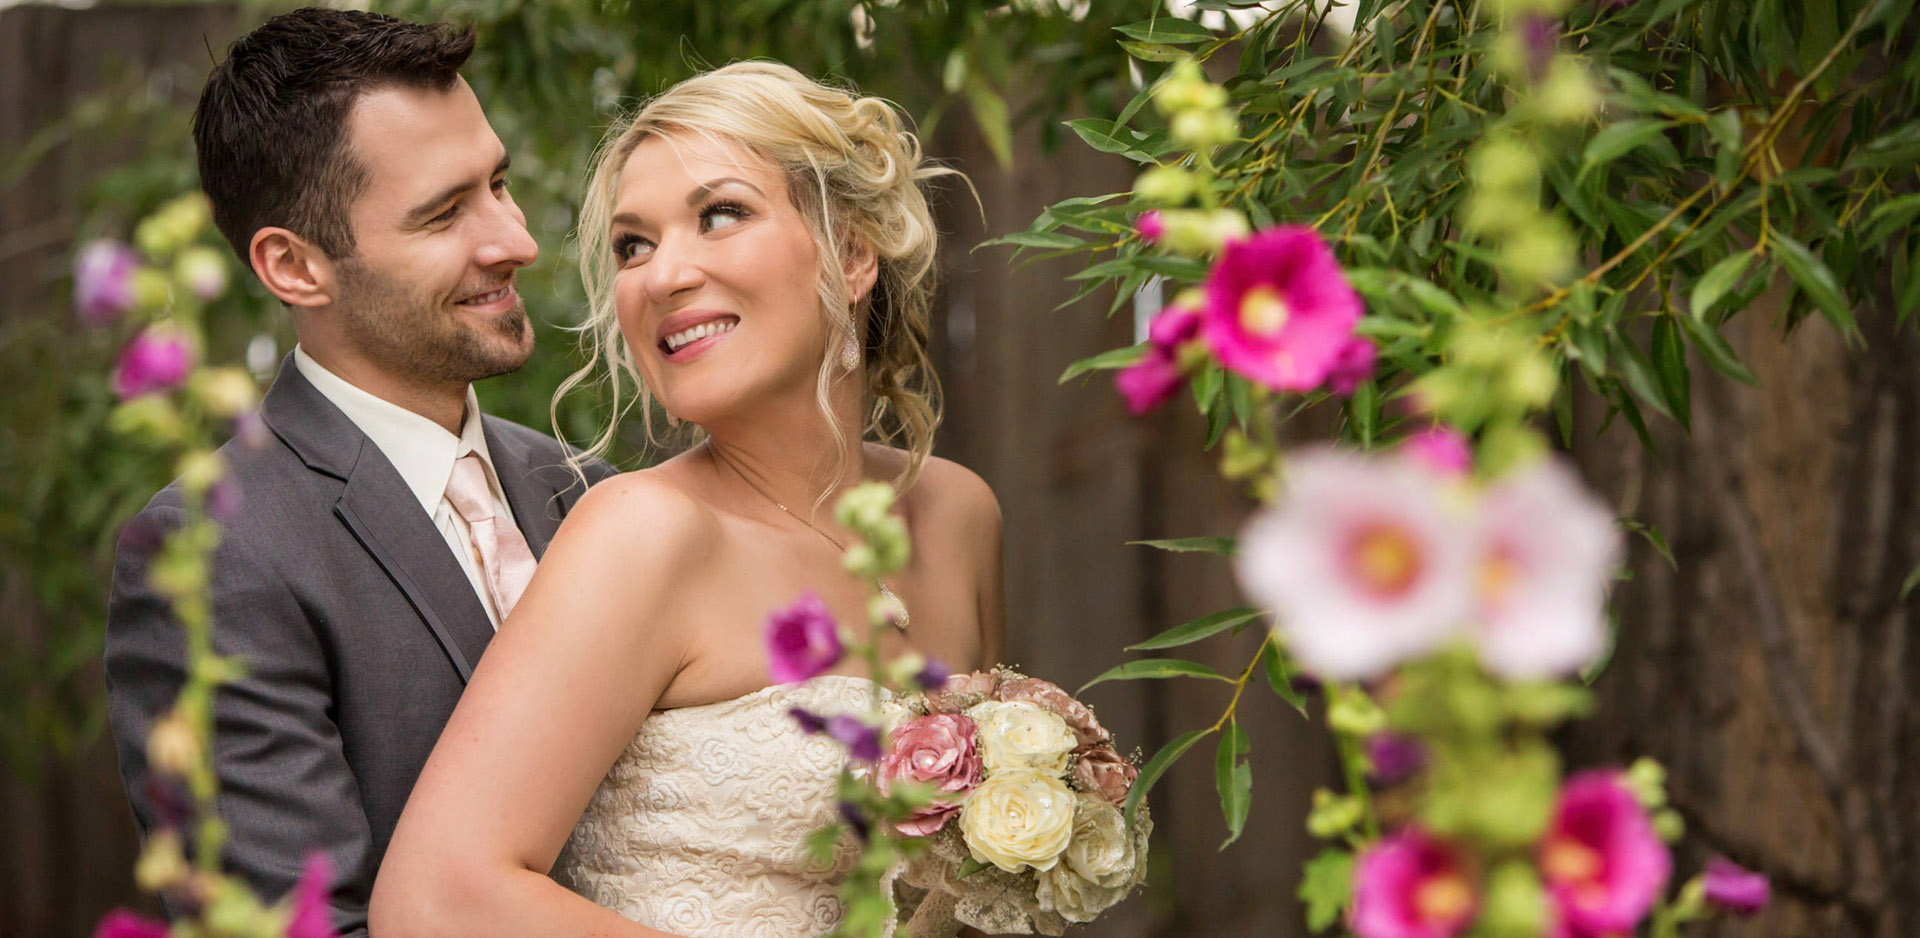 Bride and Groom smiling at each other behind pink hollyhock flowers at the Norland